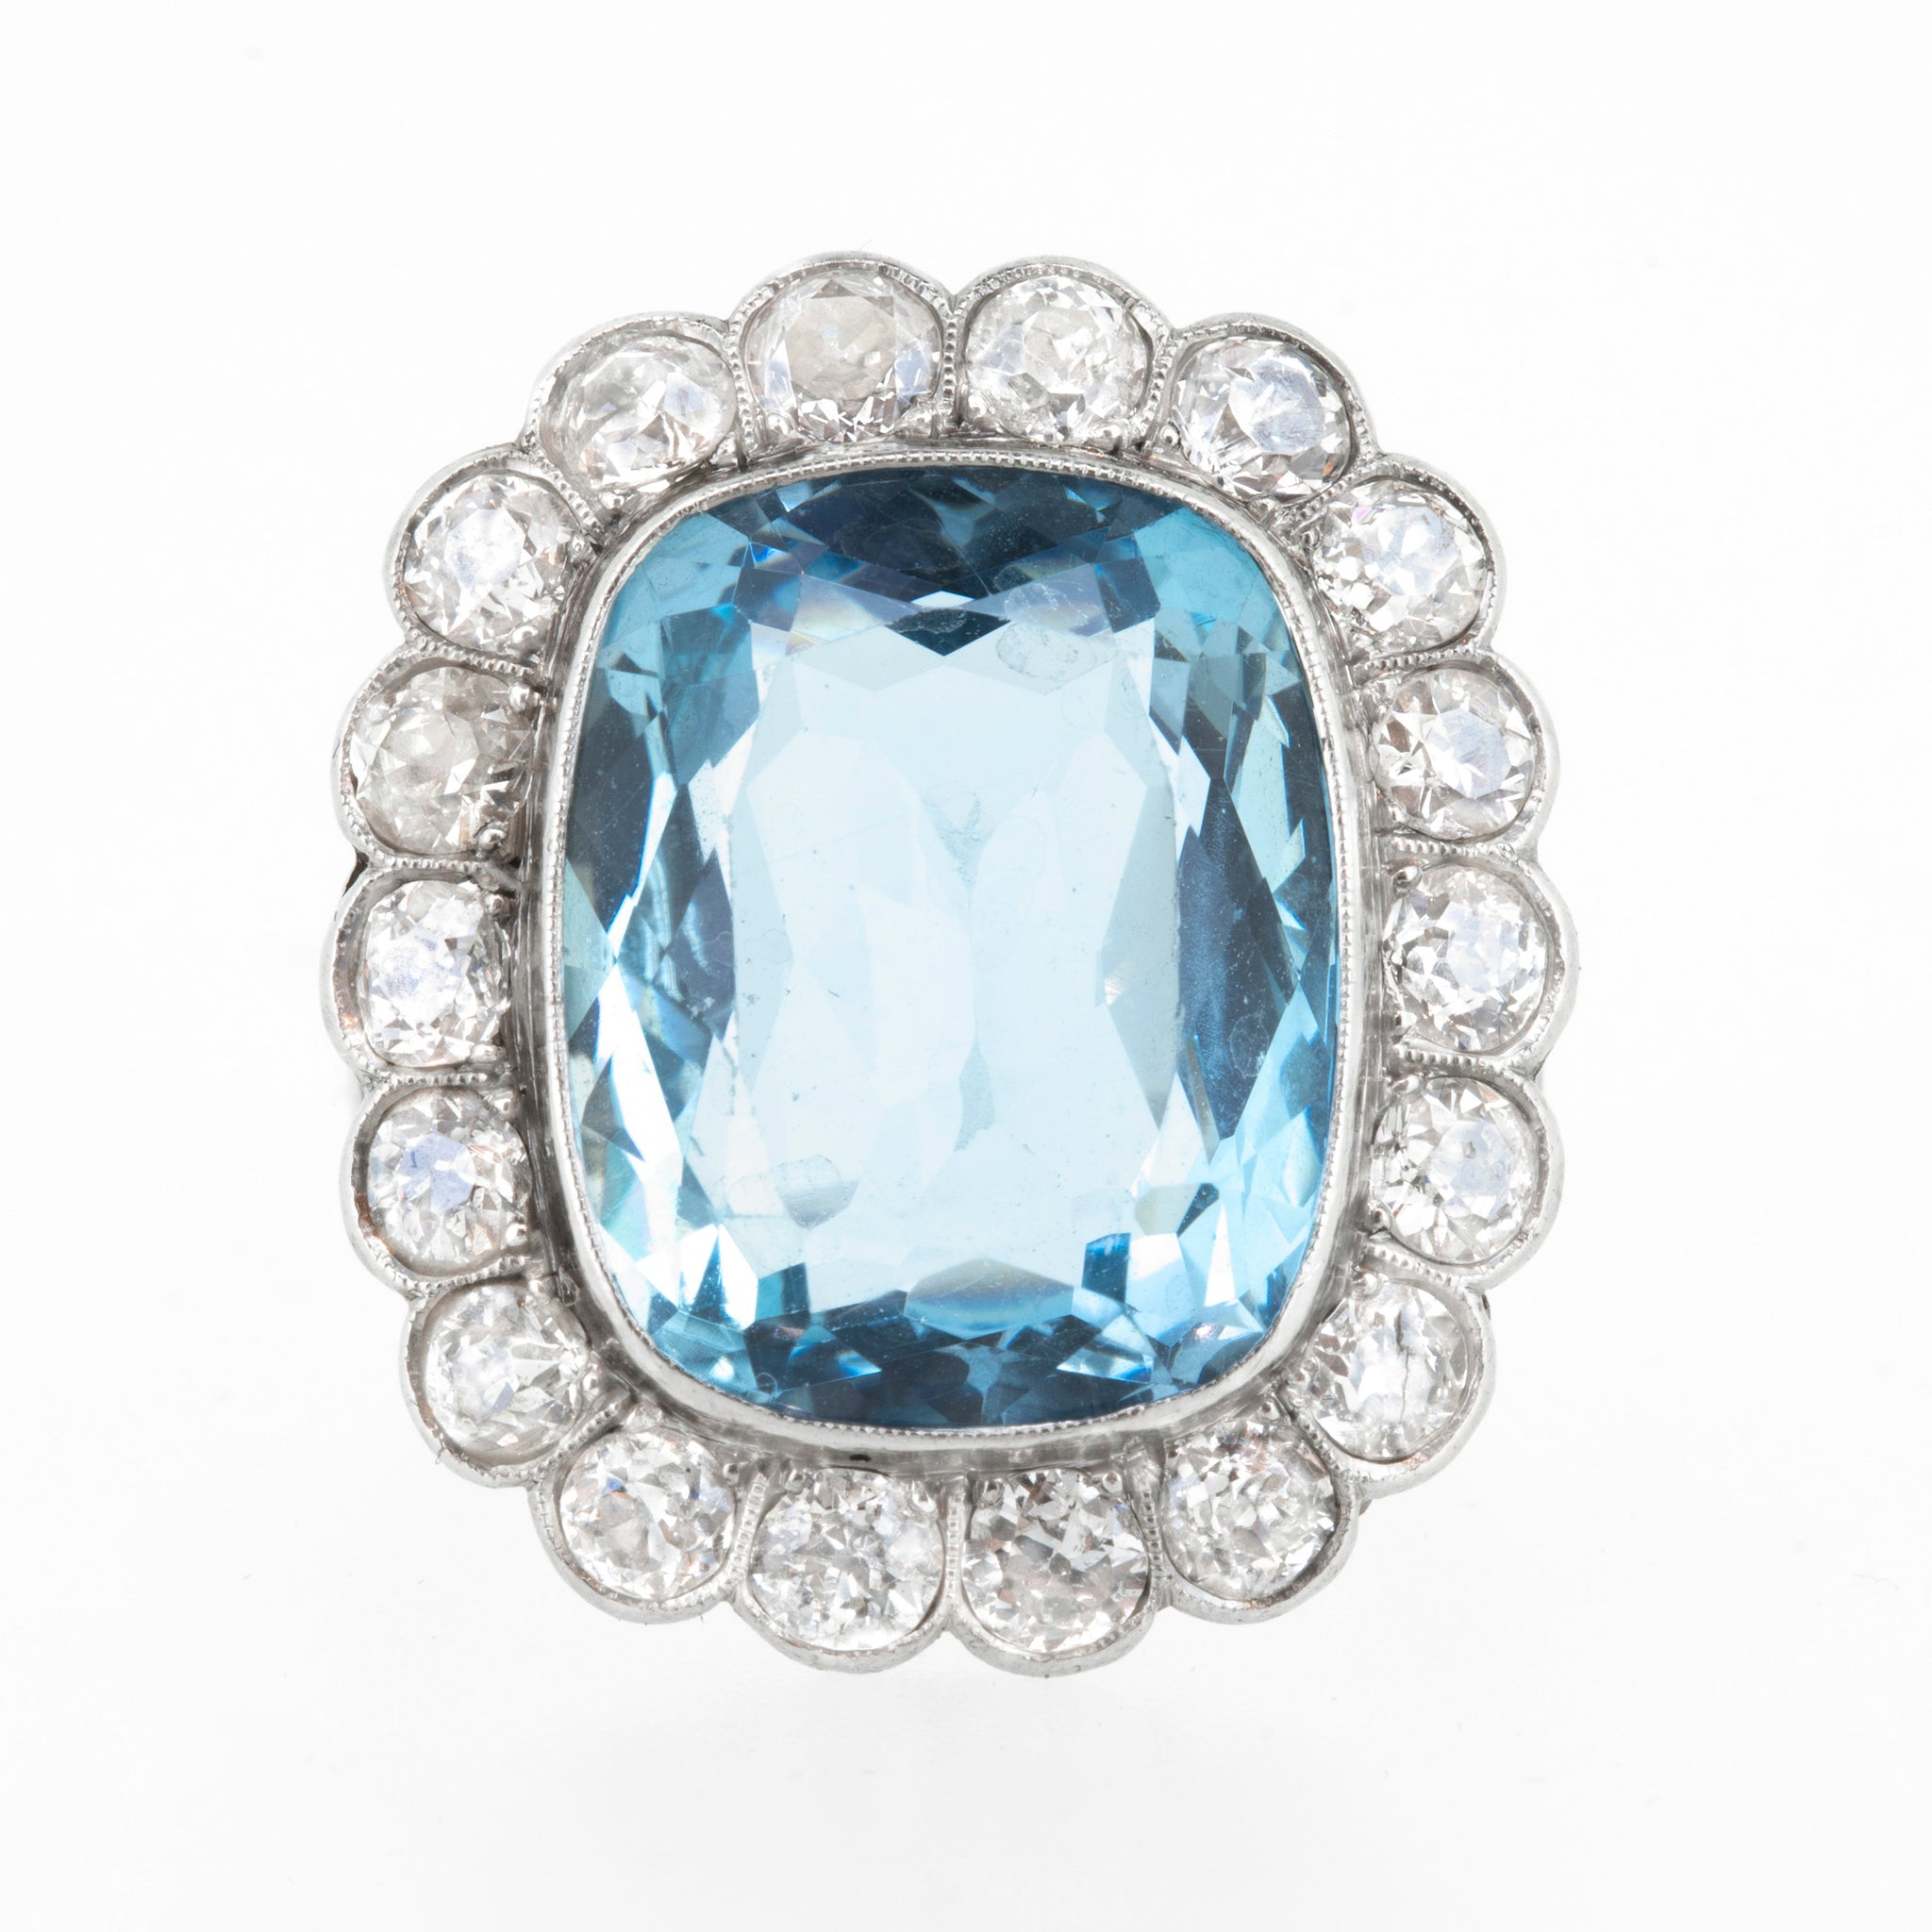 The Antique Aquamarine